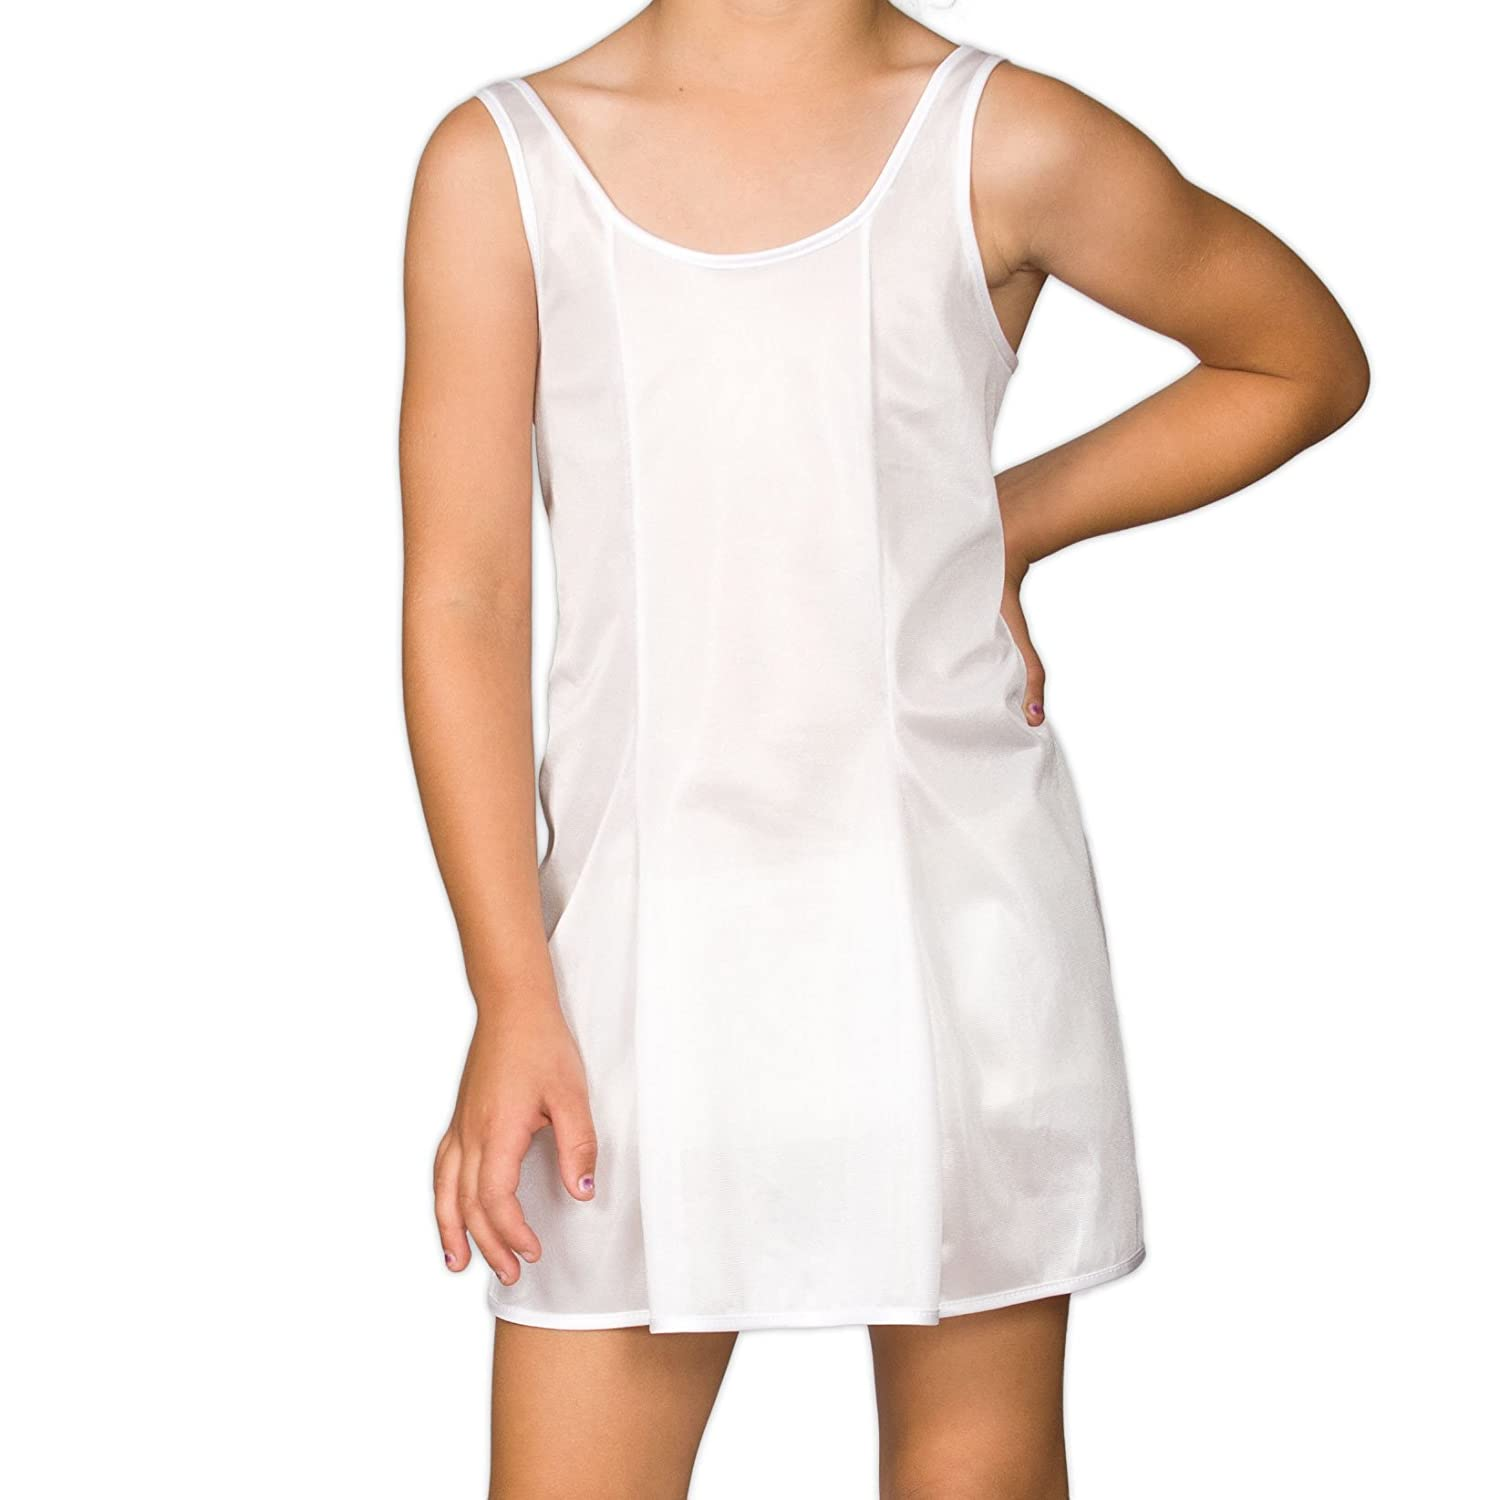 I.C. Collections Big Girls White Sleek Nylon Slip, 8 New ICM 000420-WHC